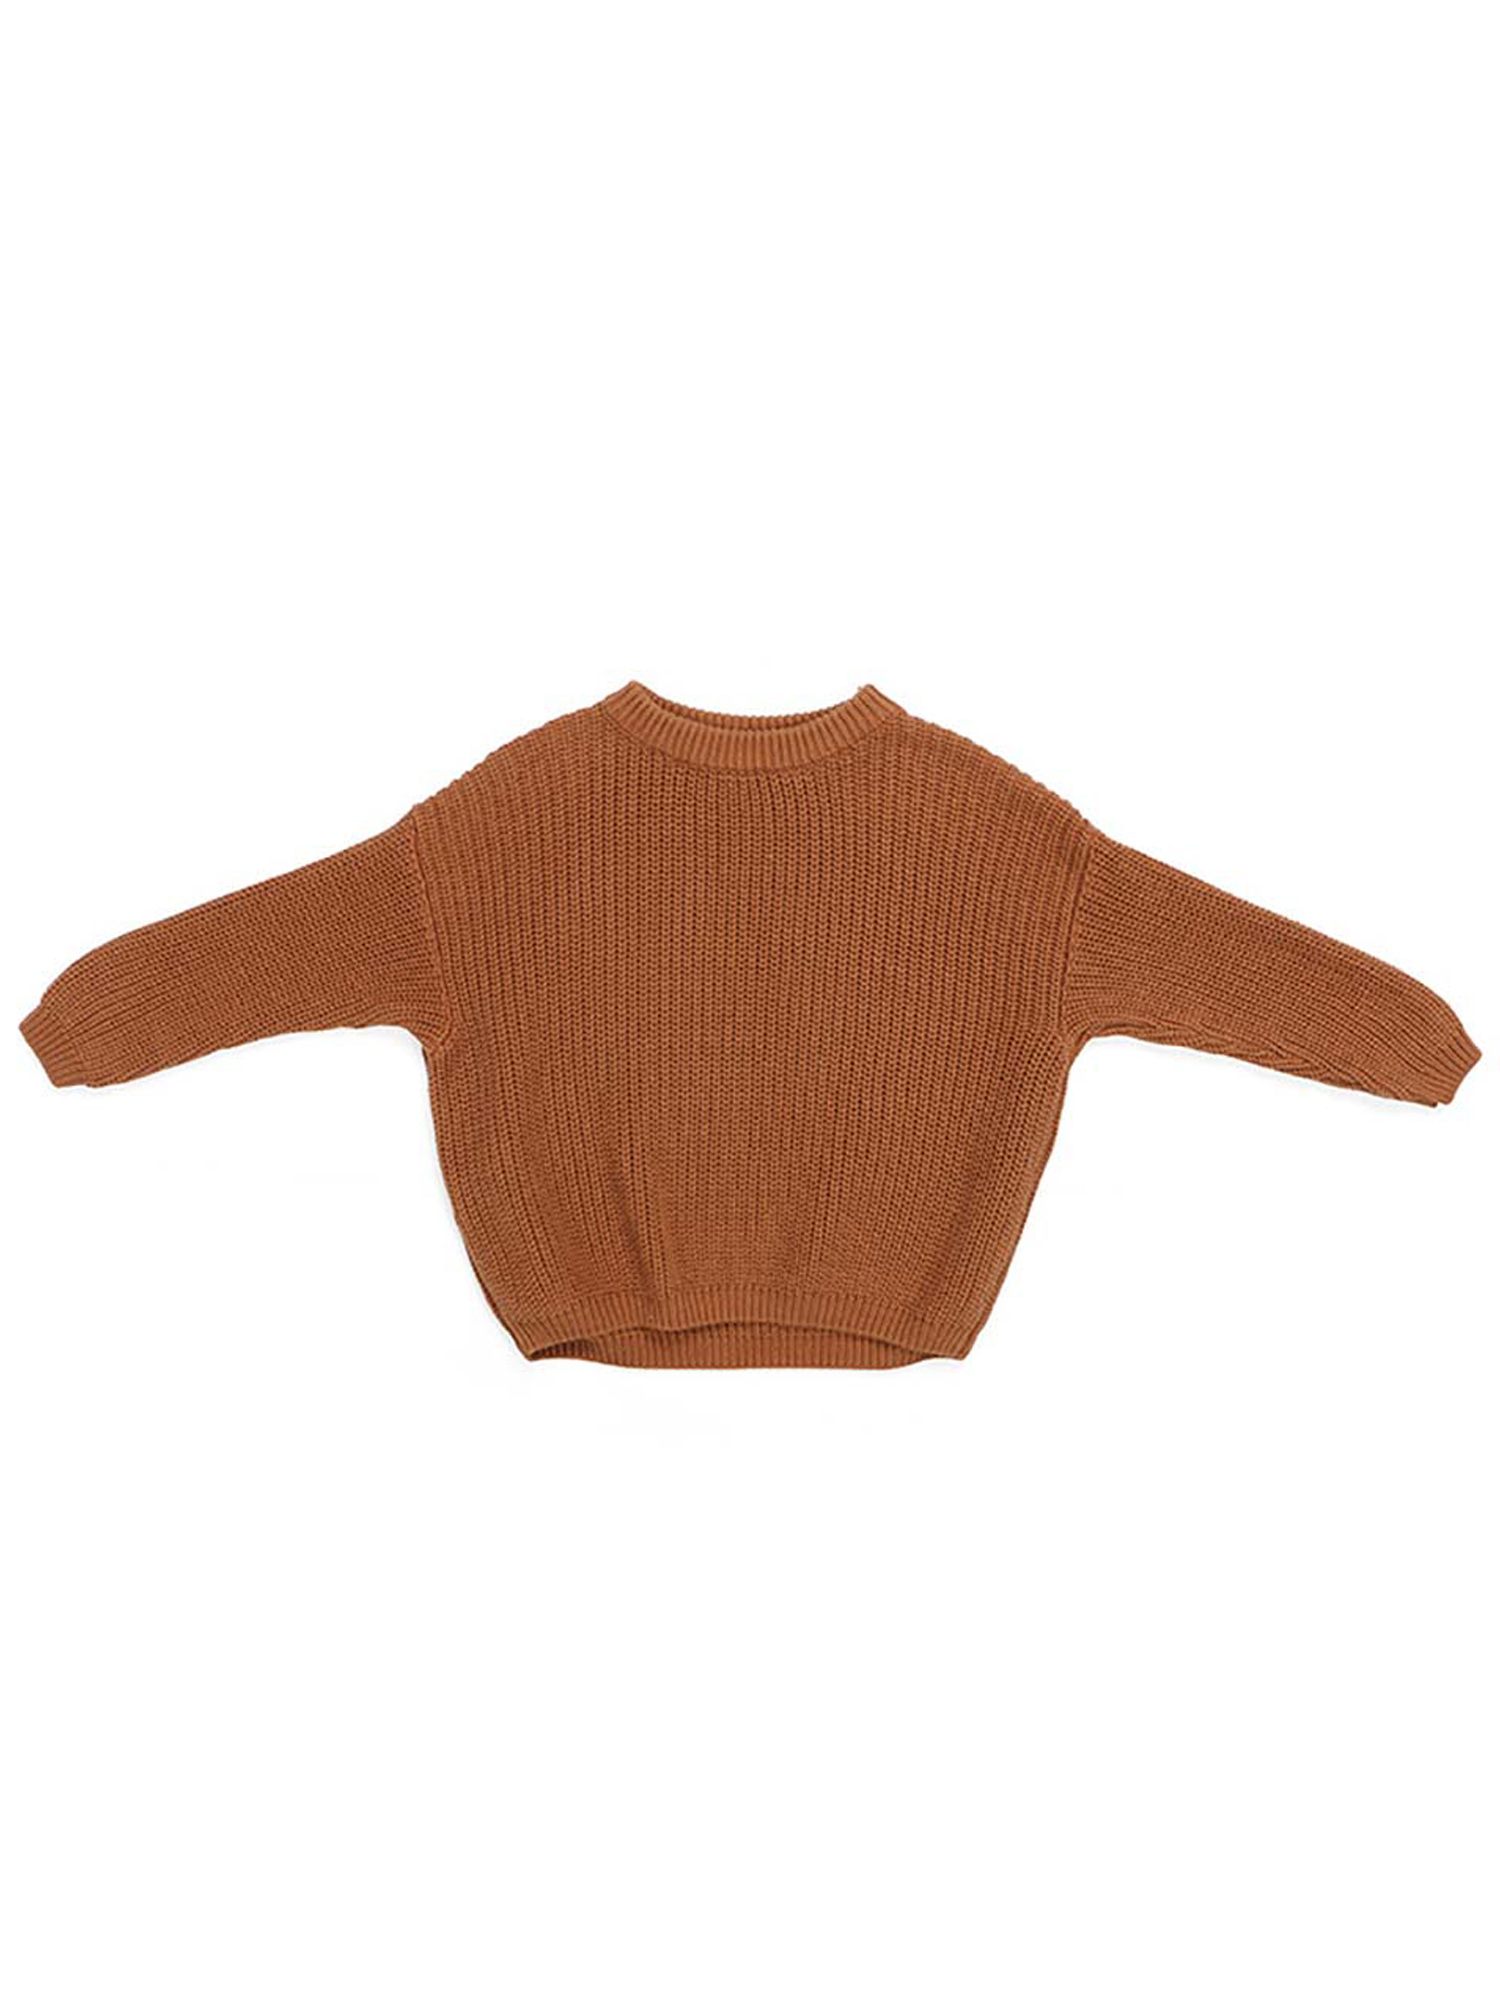 Toddler Baby Sweaters 1-5T Kids Boy Girl Fall Winter Long Sleeve Knitted Pullover Thick Top Solid Clothes